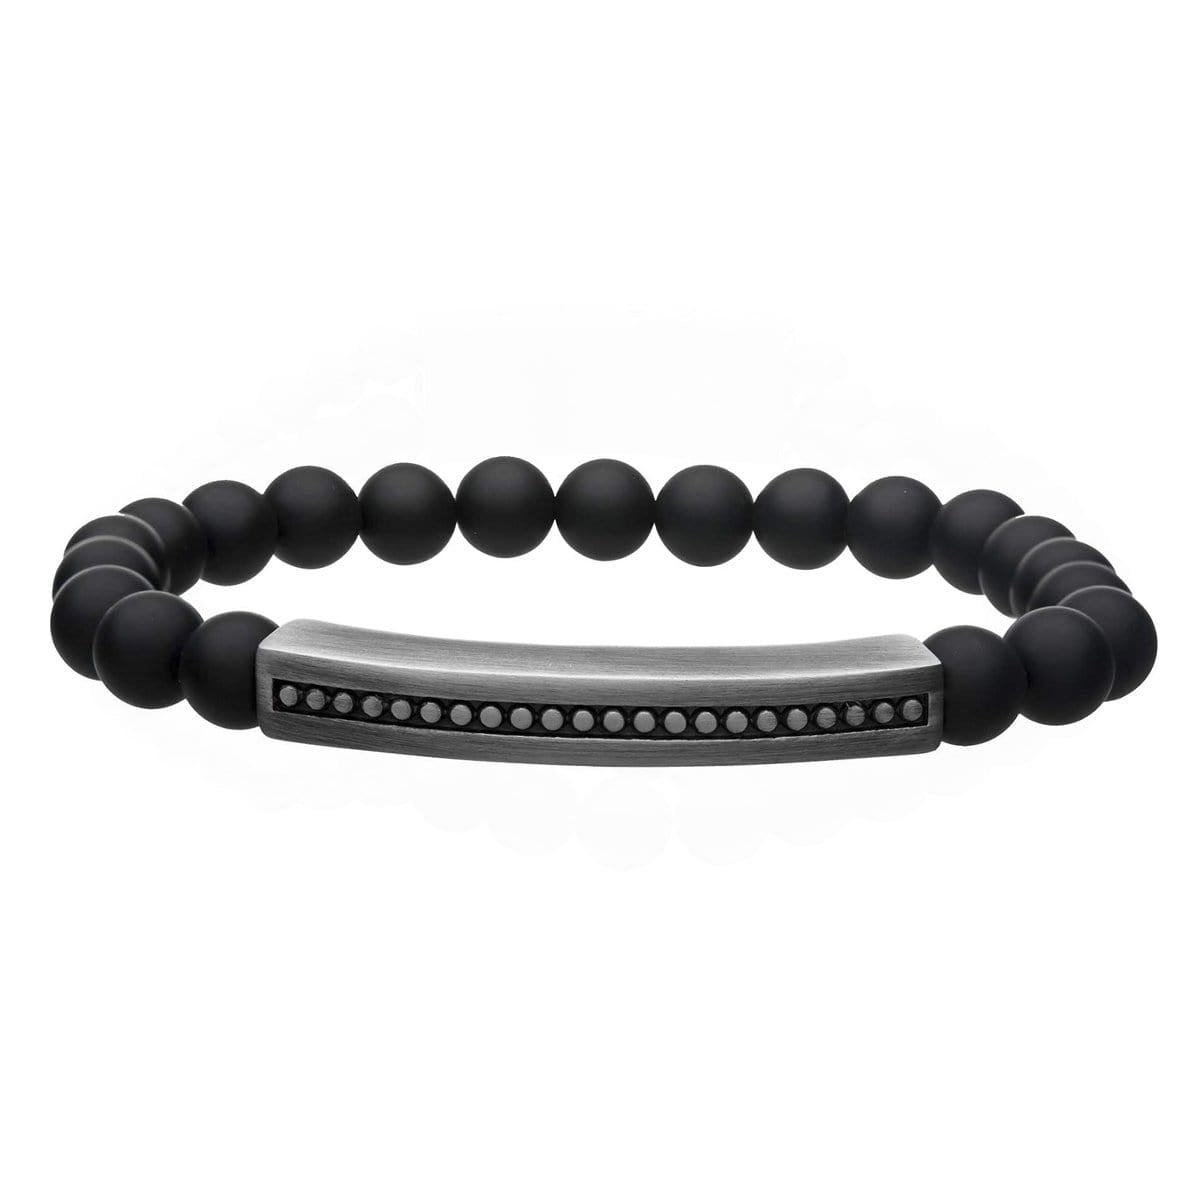 Silver Stainless Steel Oxodized Finish Gun Metal with Black Molten Lava Bead Dotted Plate Stretch Bracelet